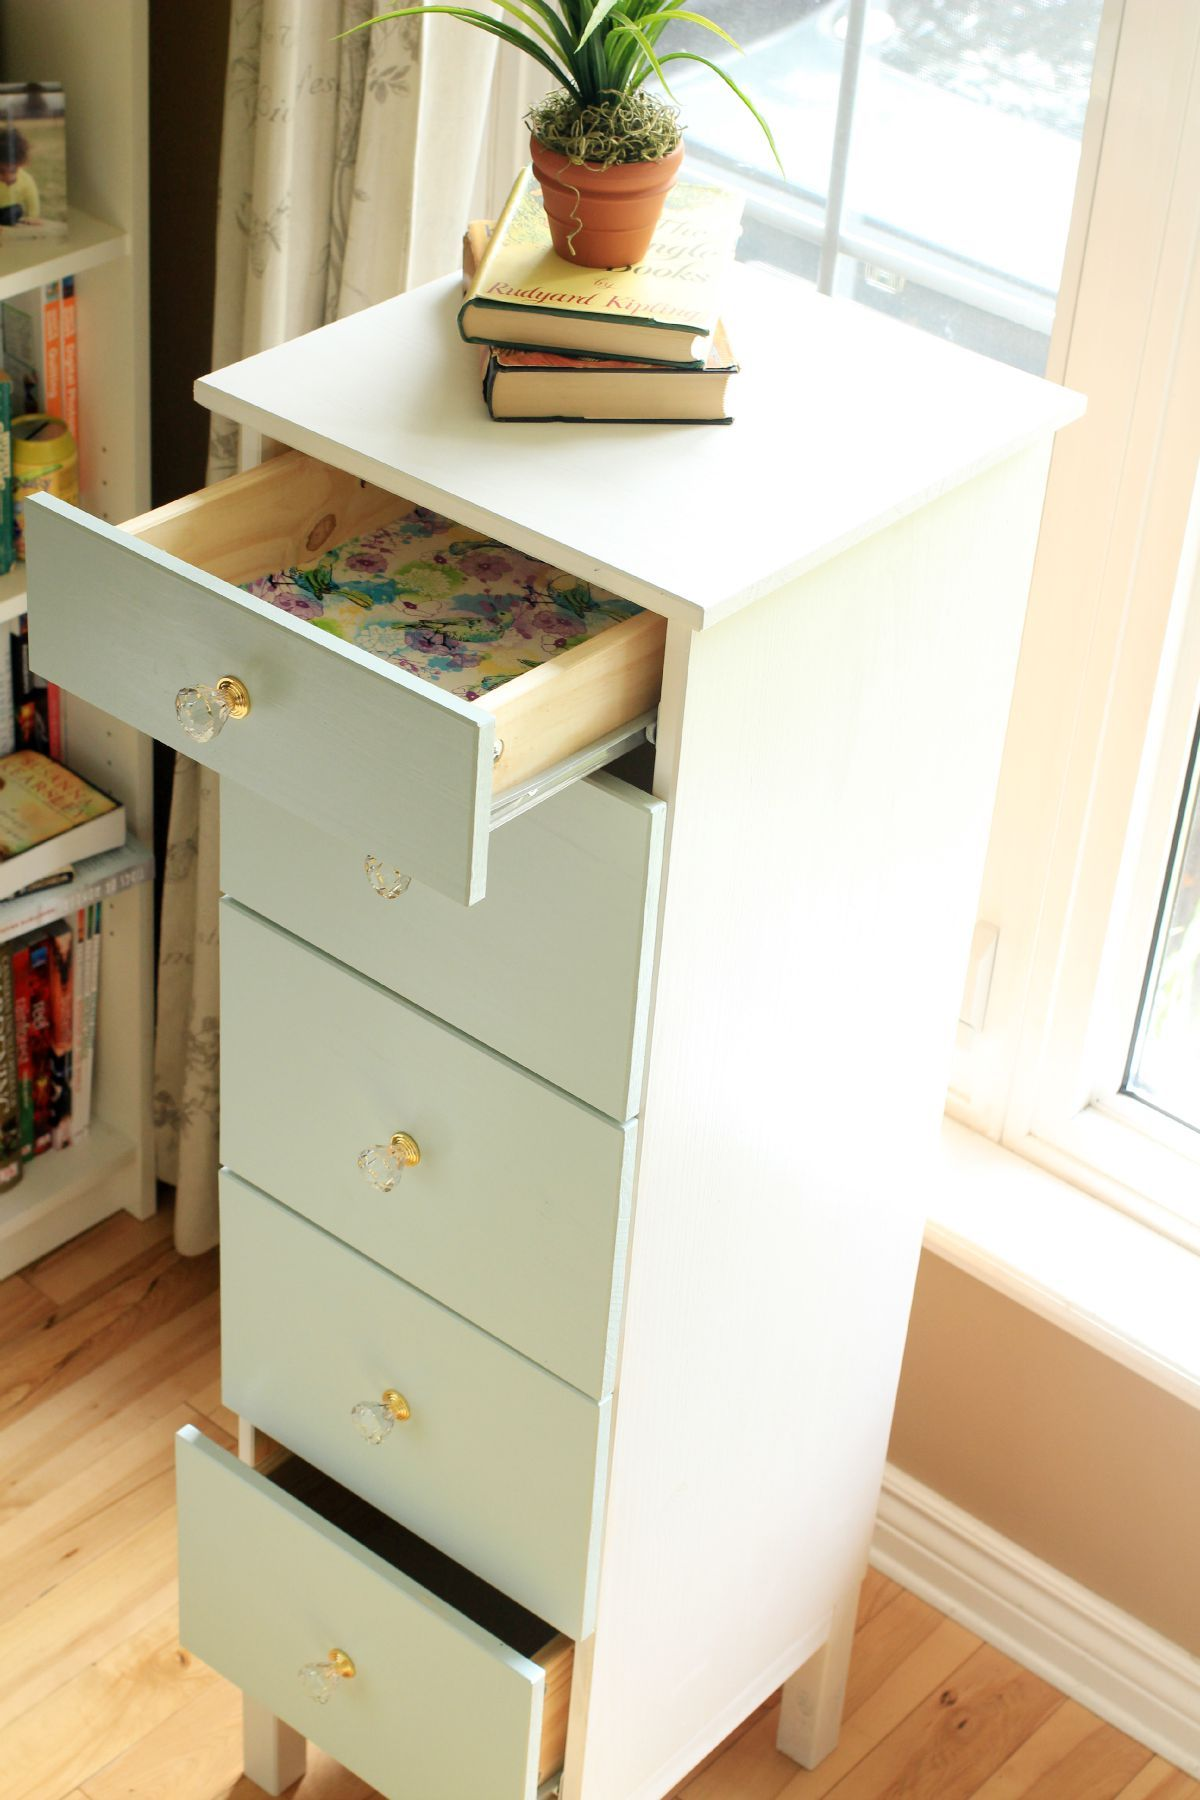 Exceptionnel This Ikea Tarva Dresser Makeover With Fabric Lined Drawers Is A Fairly Easy DIY  Furniture Makeover Project That Results In A Gorgeous One Of A Kind Piece!